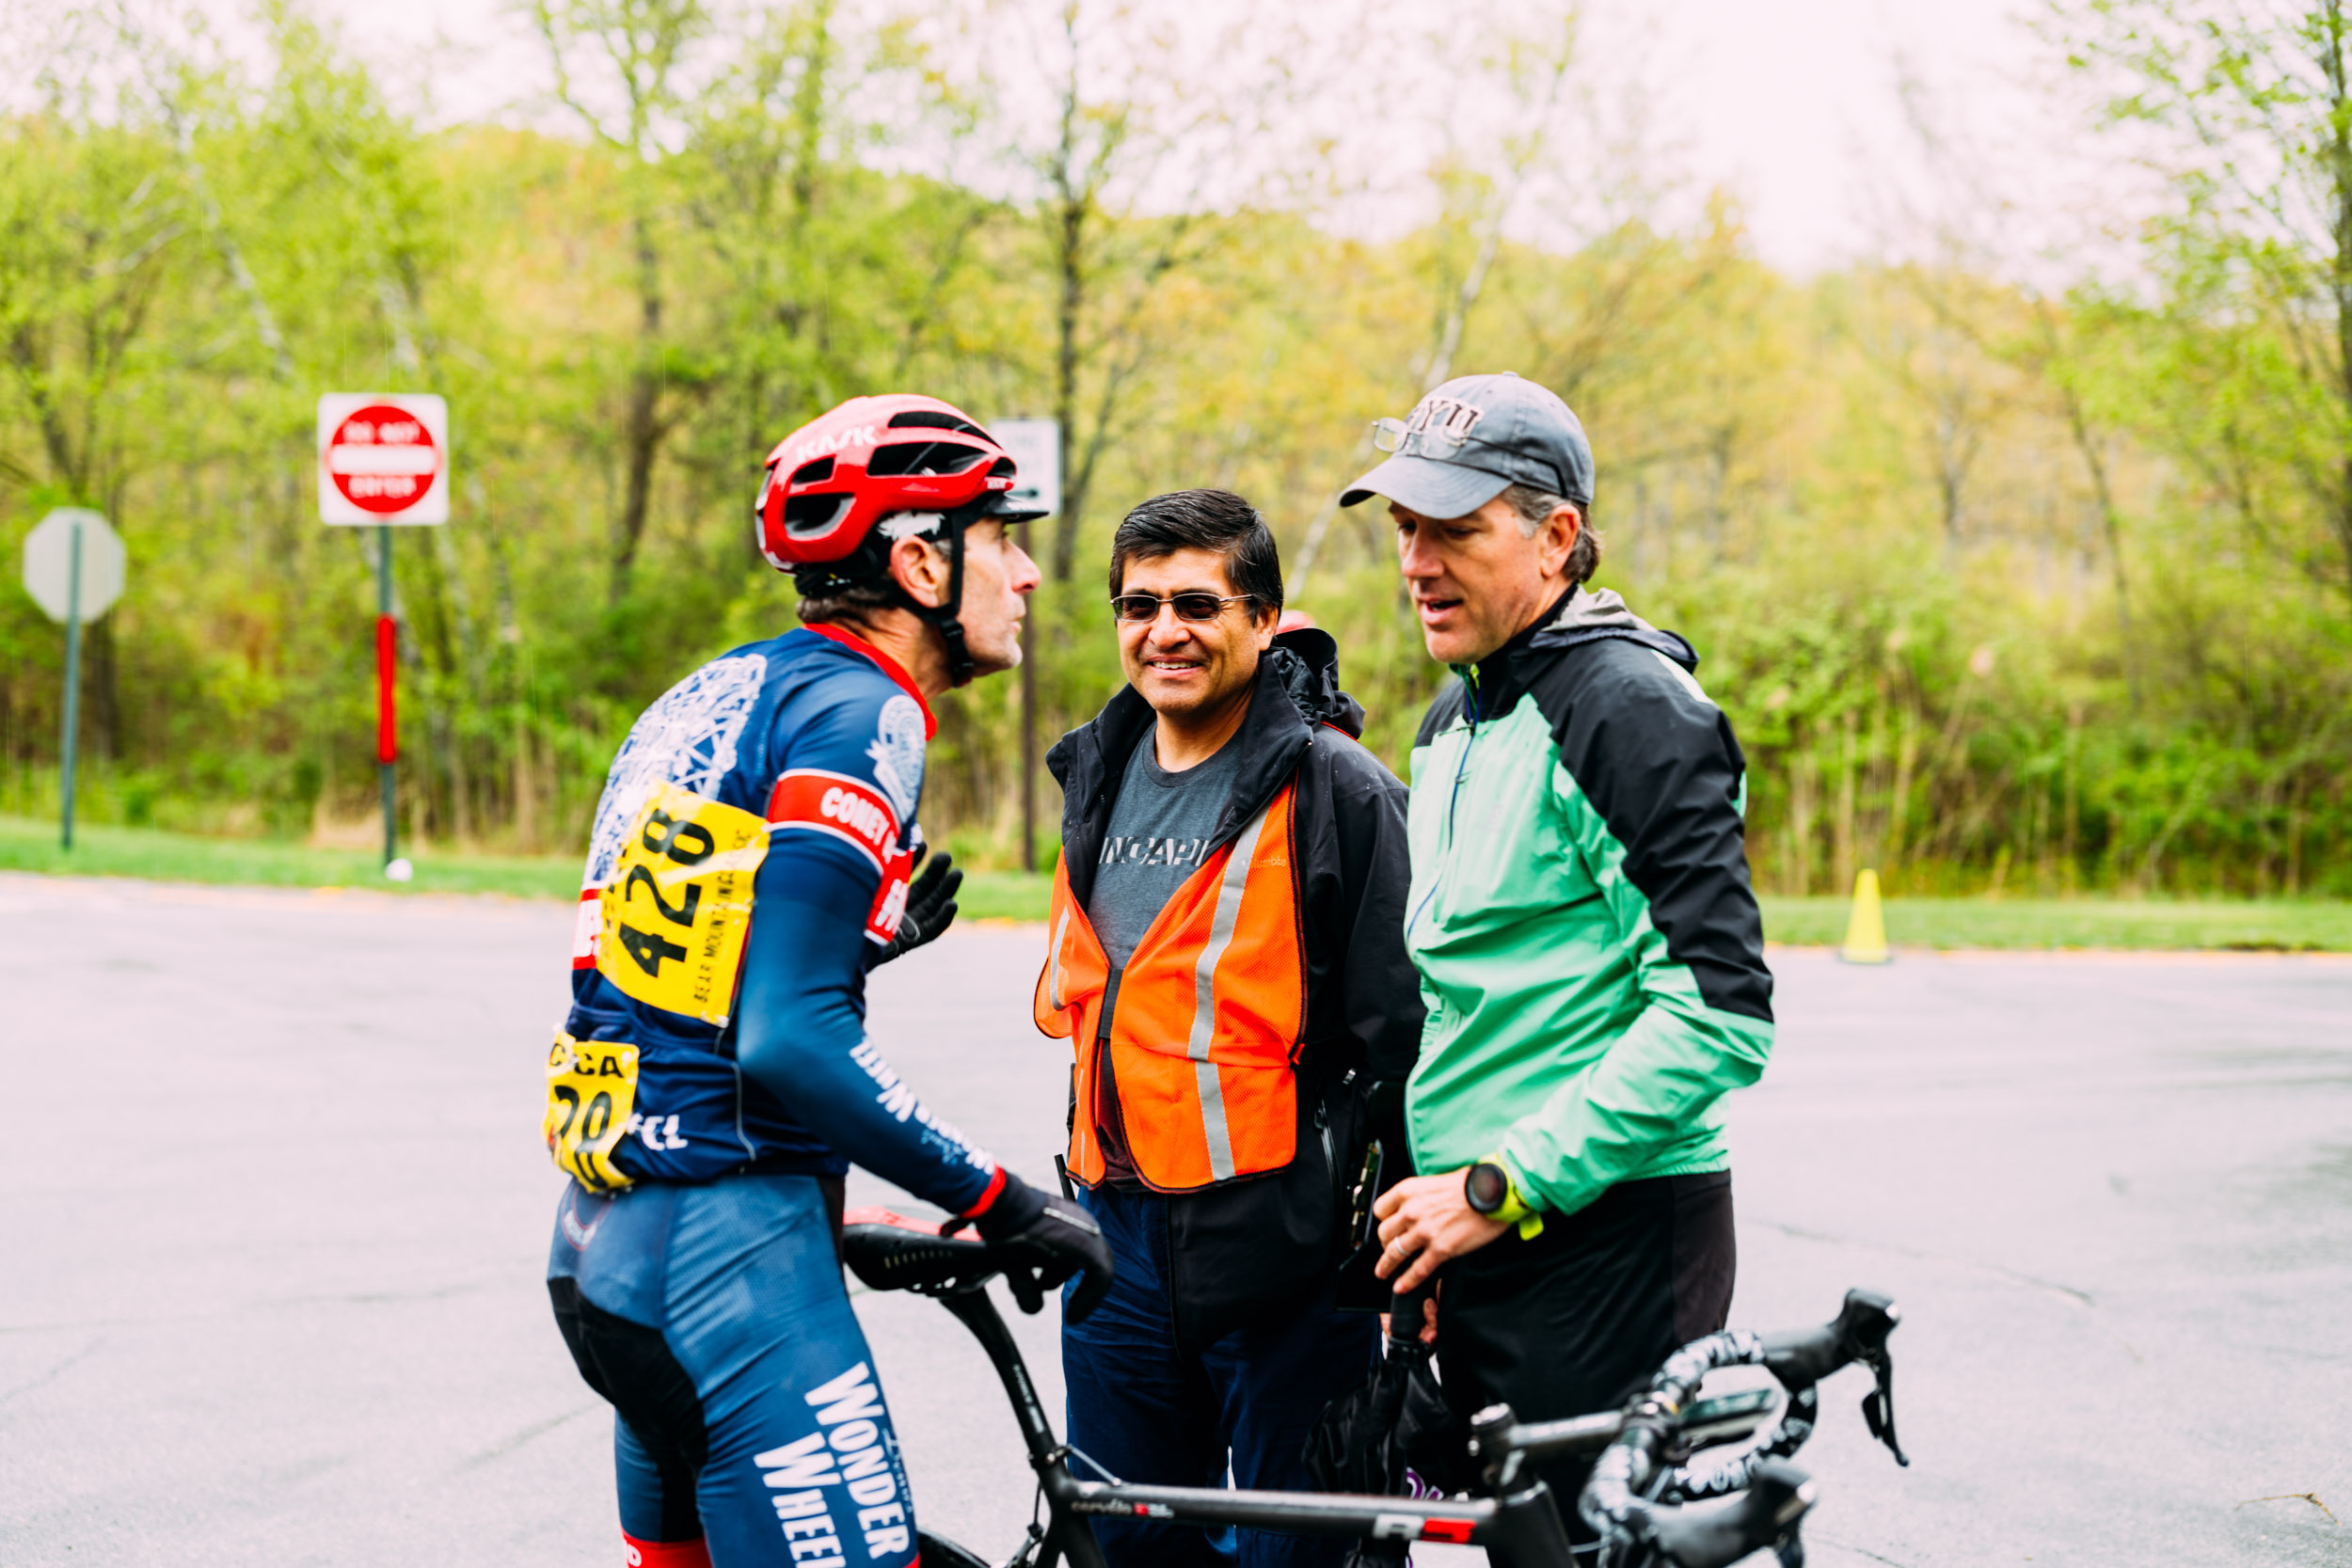 Alex Rodriguez in action on race day, via our Bear Mountain Classic 2018 Race Report